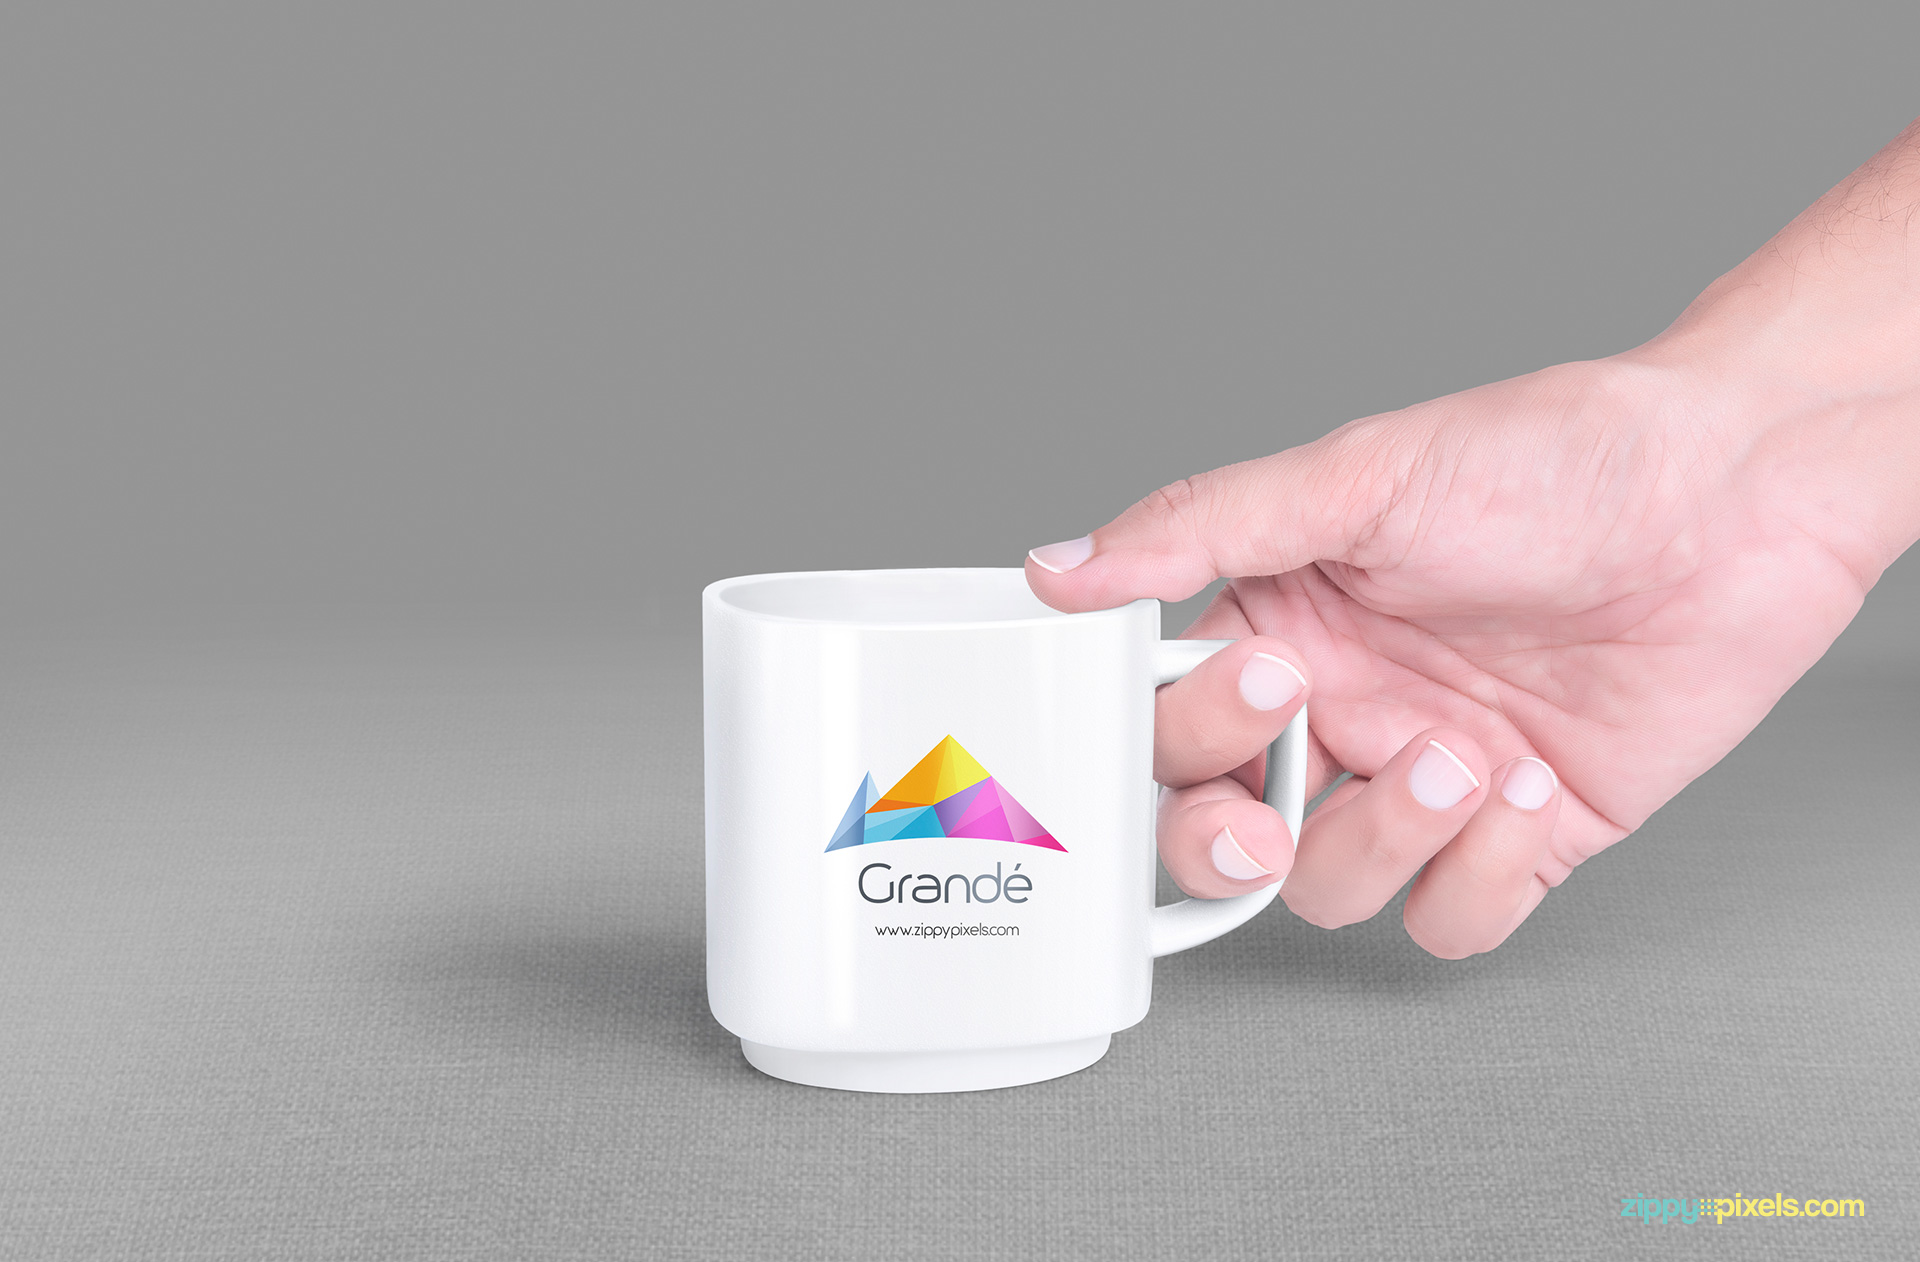 Freebie mug mockup in realistic environment.